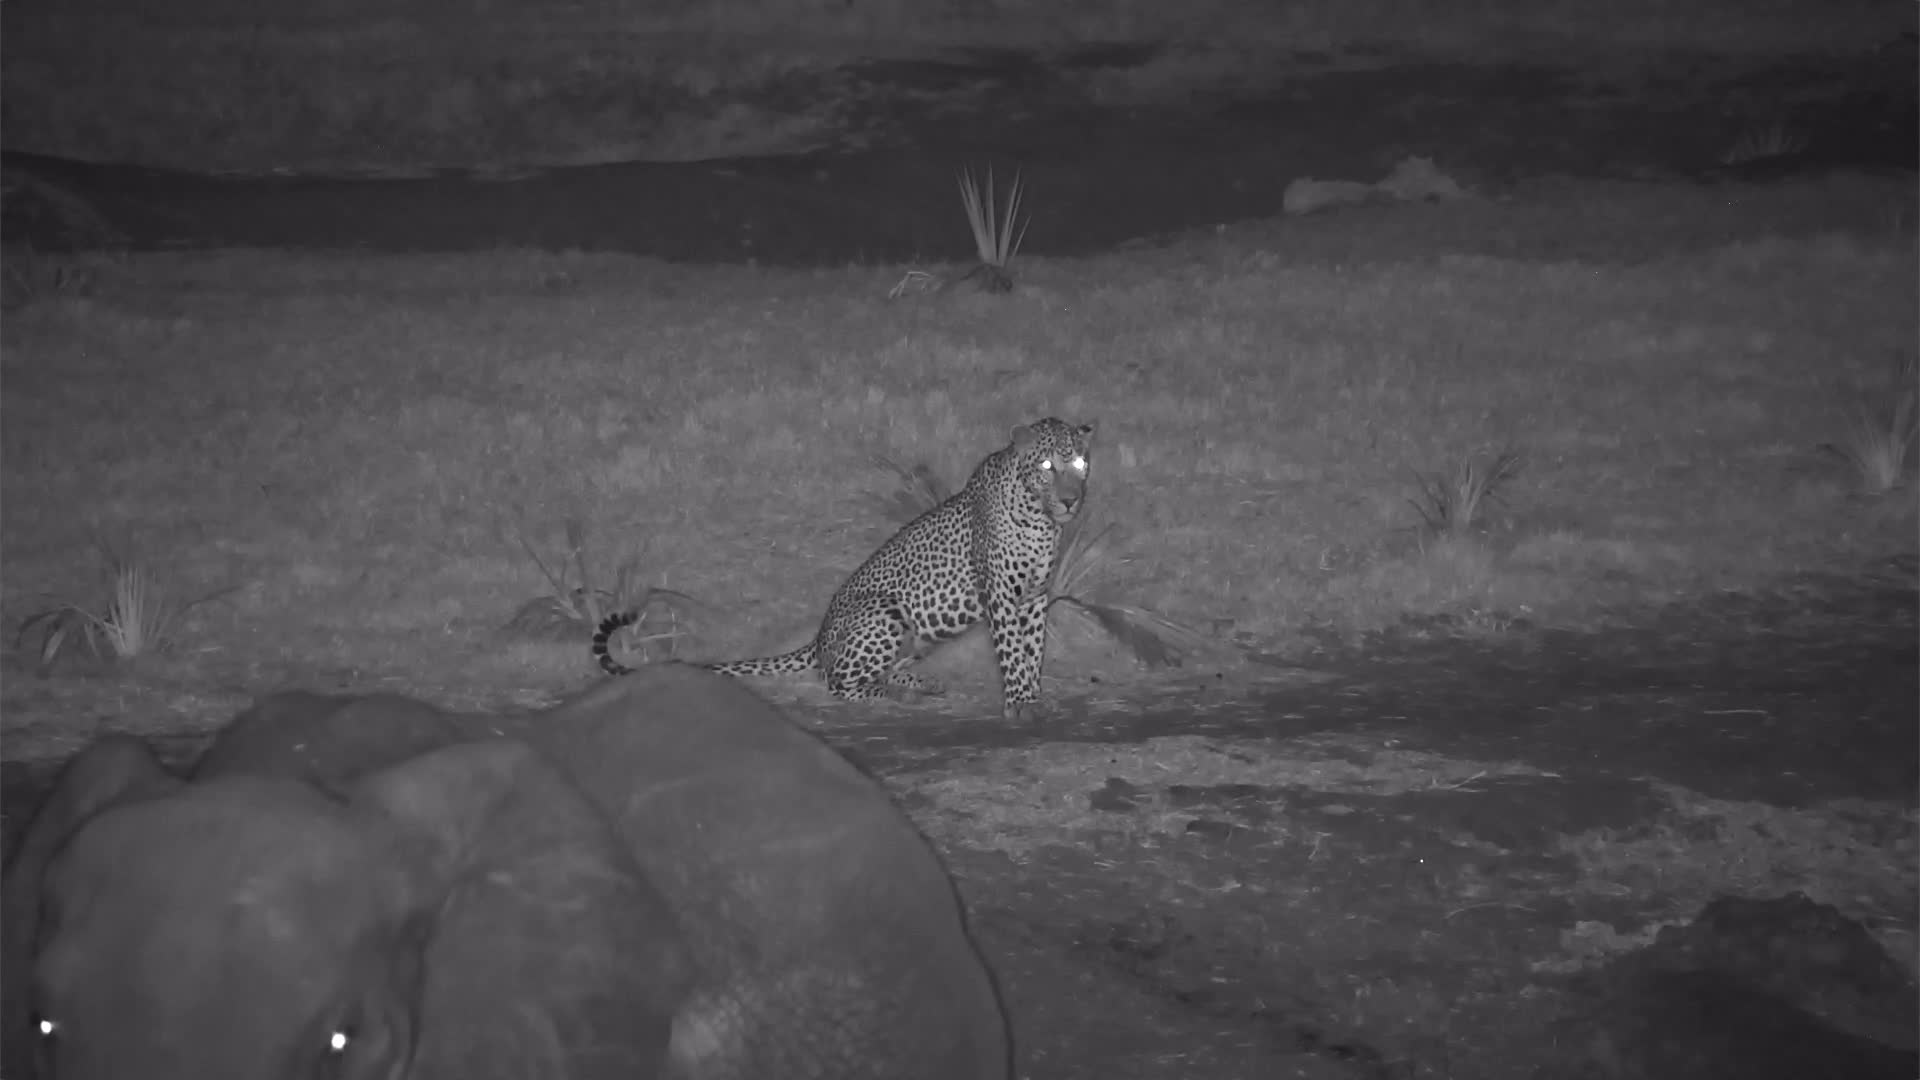 VIDEO: Leopard observes the elephant and the area and wanders back and forth